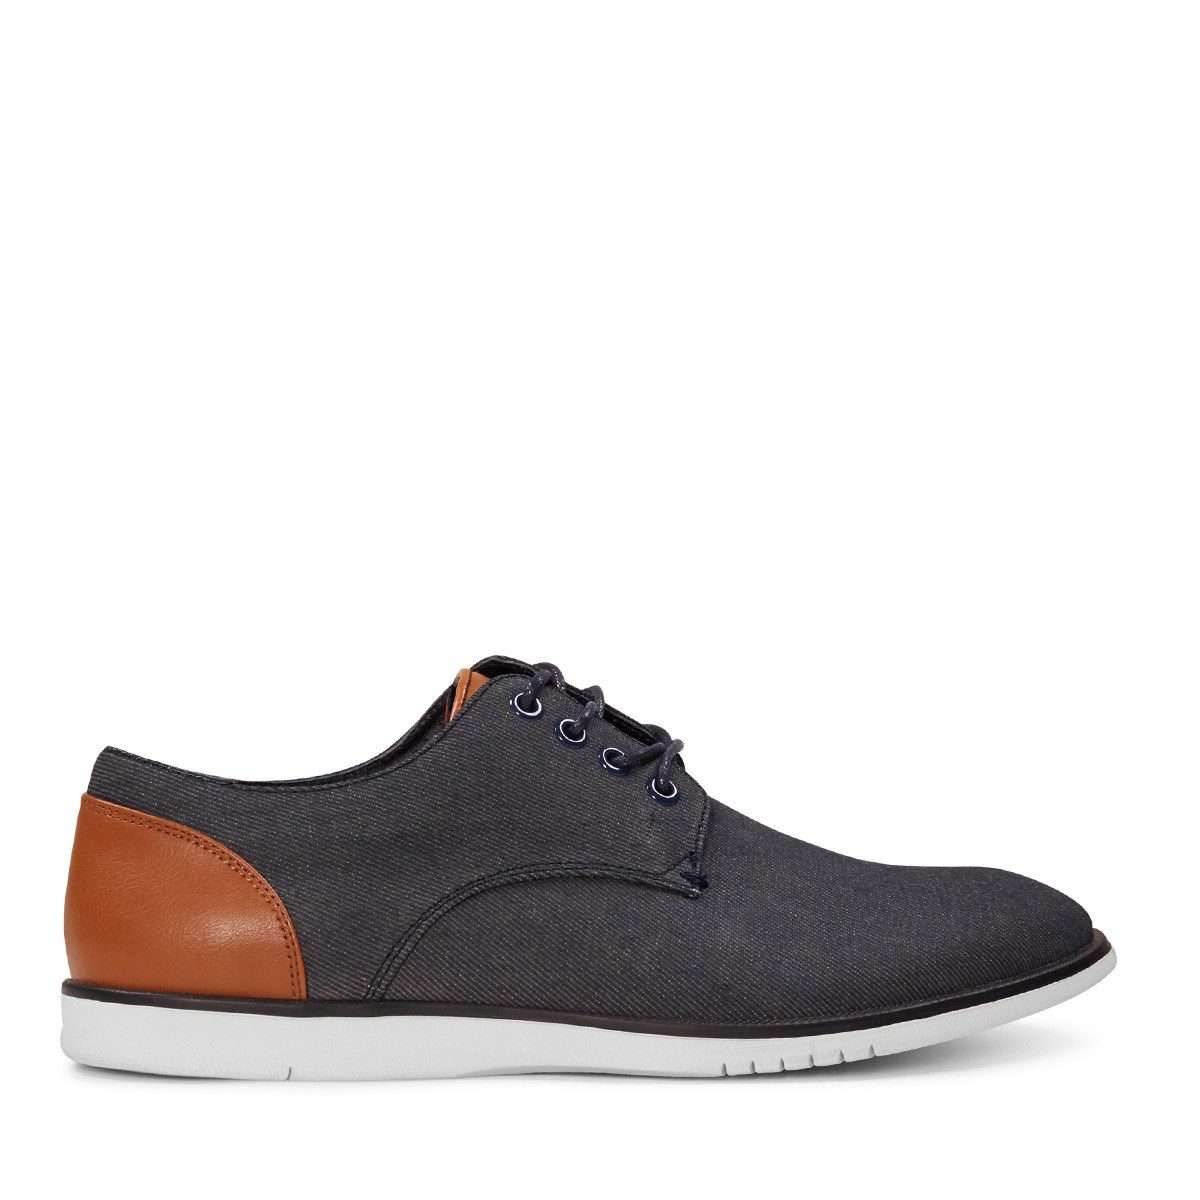 Men's Denim Lace-Up Shoe in Navy